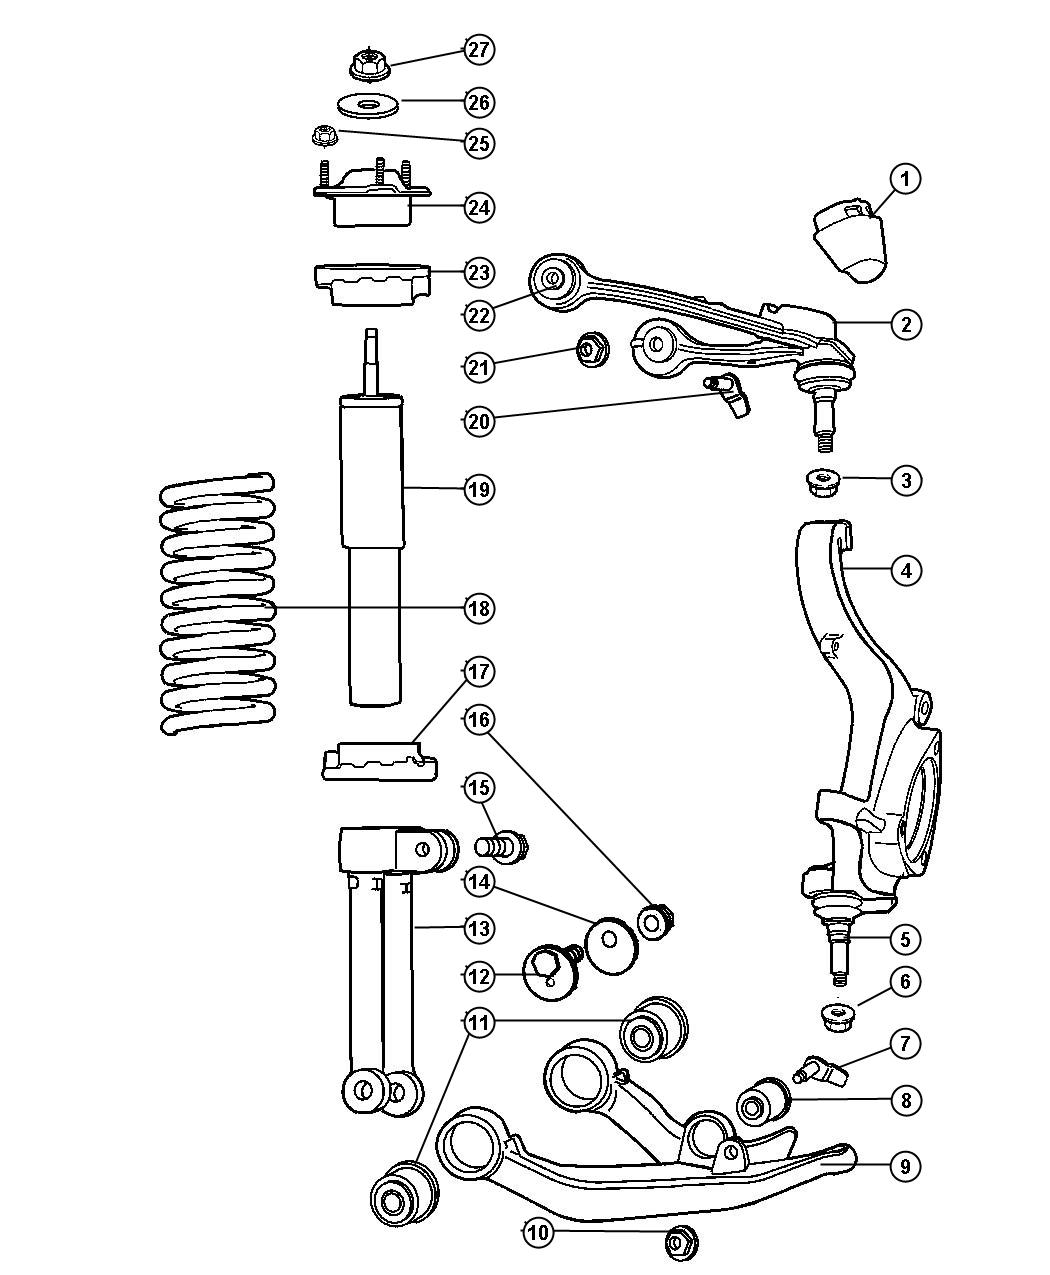 2002 jeep liberty suspension parts http www factorychryslerparts com